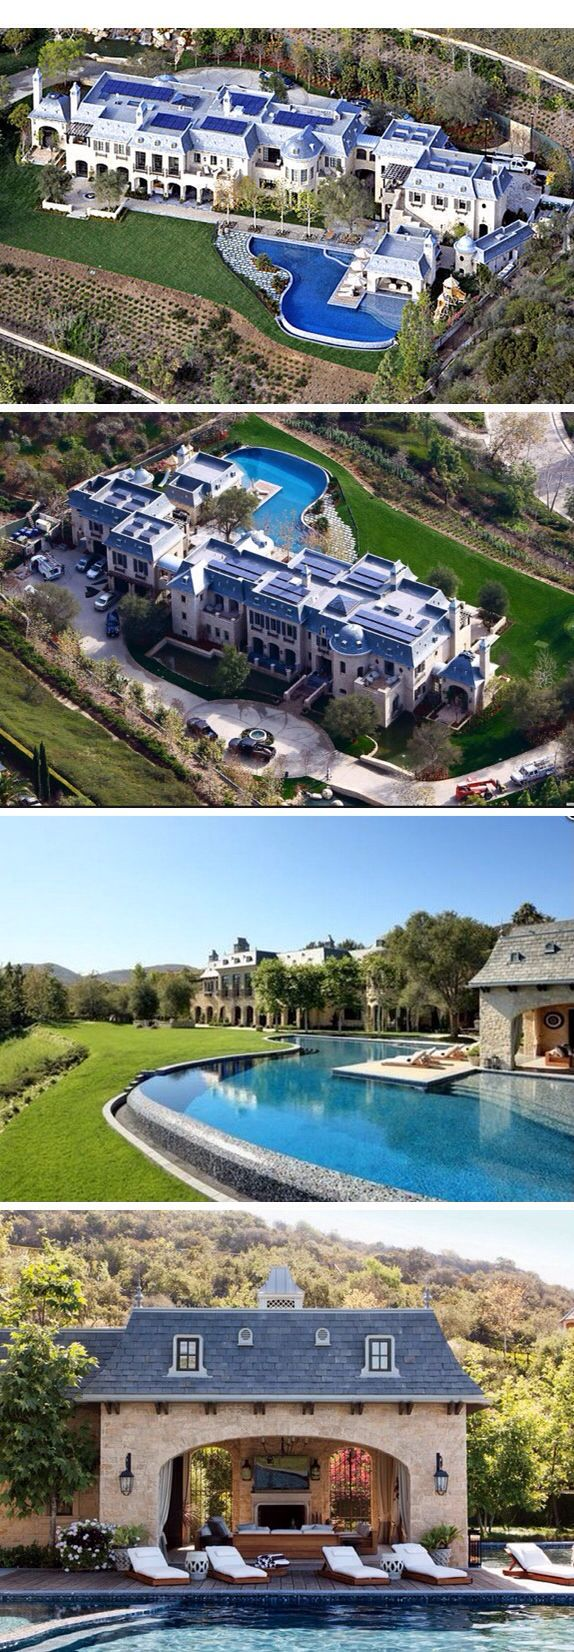 Tom Brady & Gisele Bundchen California Home